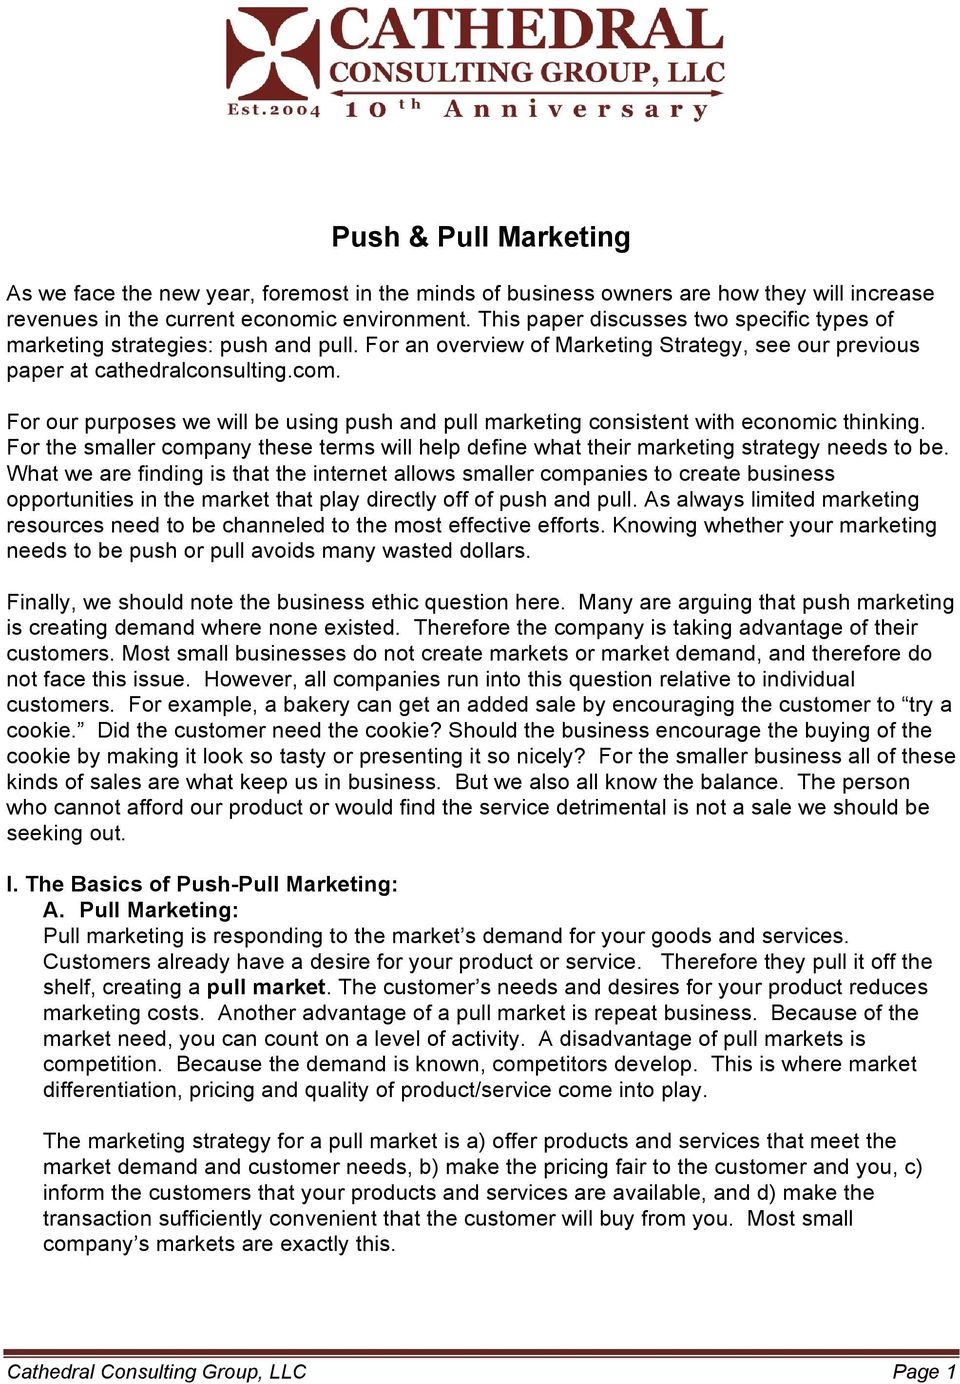 For our purposes we will be using push and pull marketing consistent with economic thinking. For the smaller company these terms will help define what their marketing strategy needs to be.